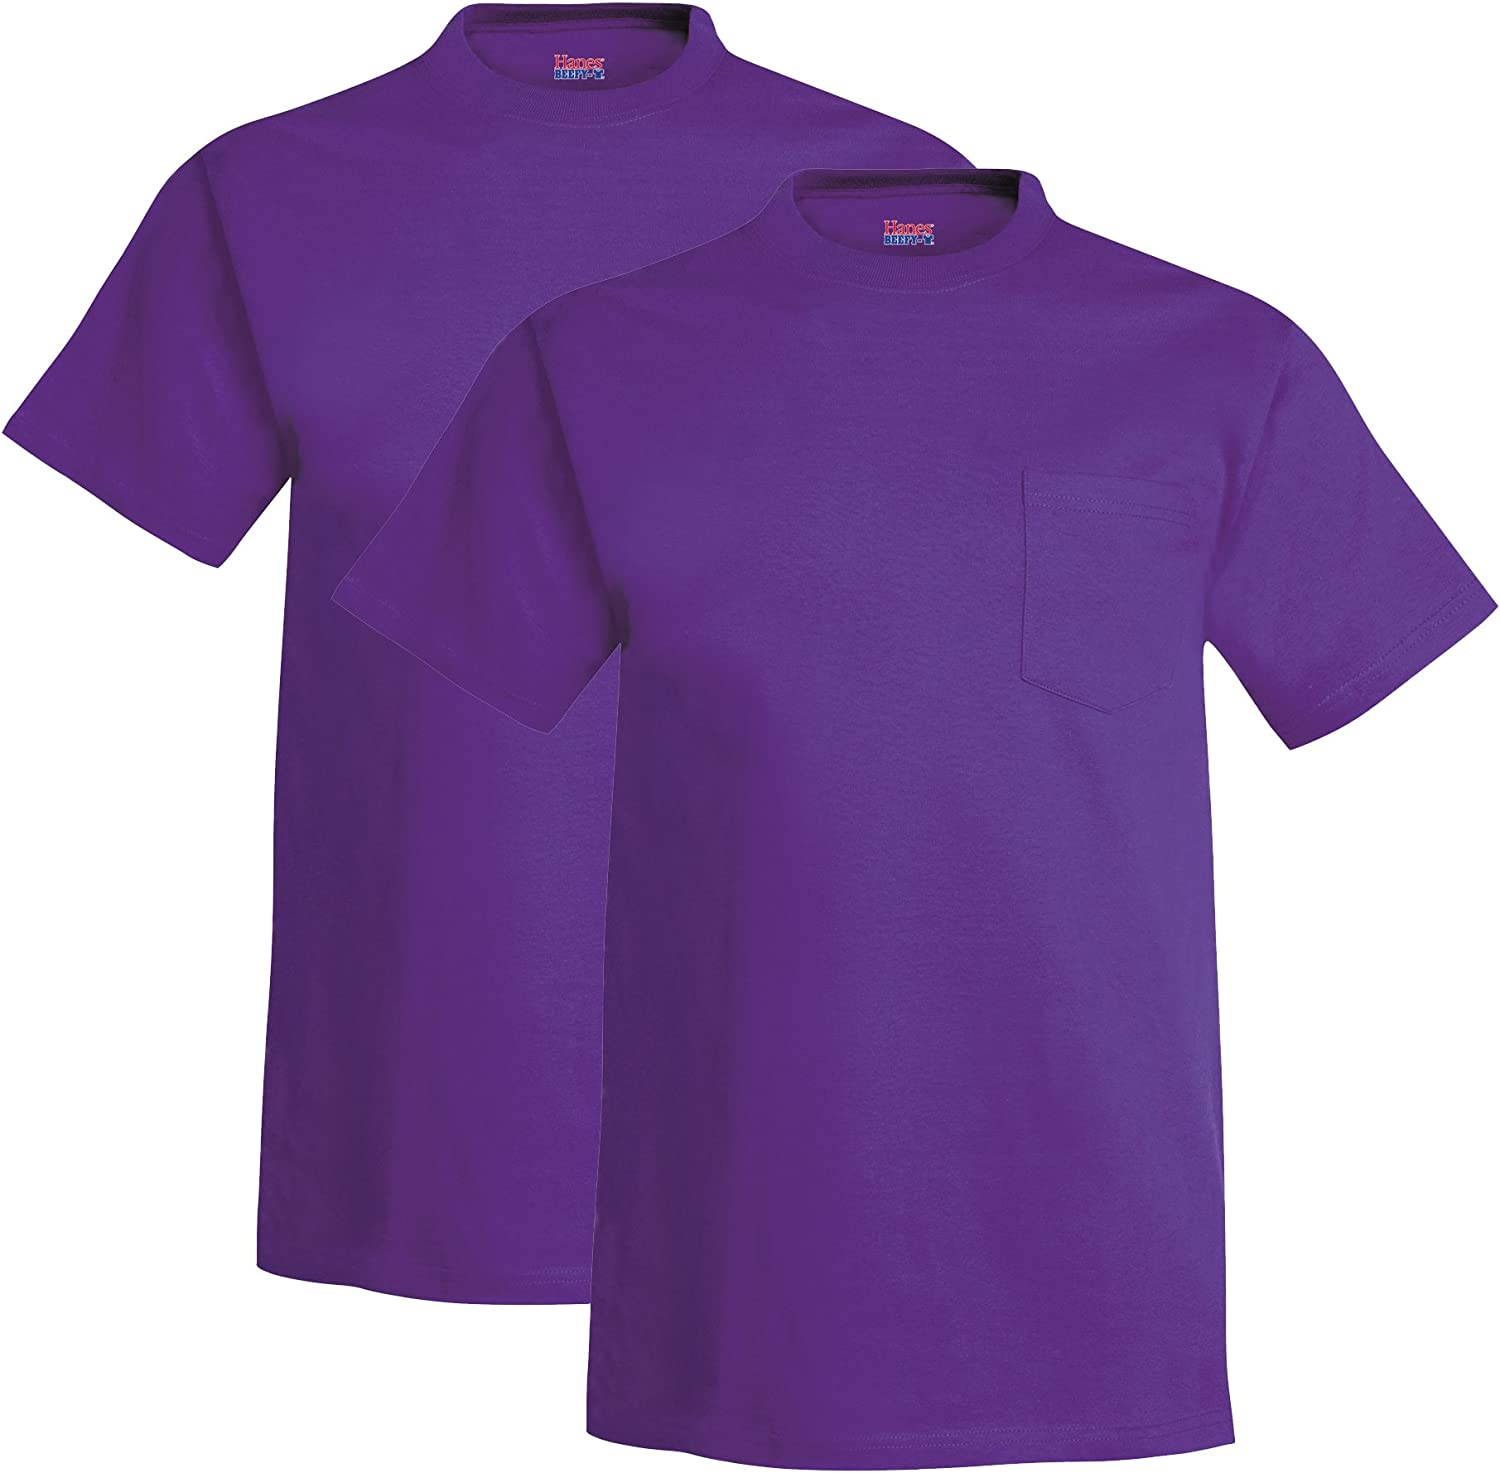 Hanes Mens 6.1 Oz. Beefy-T with Pocket (5190P)